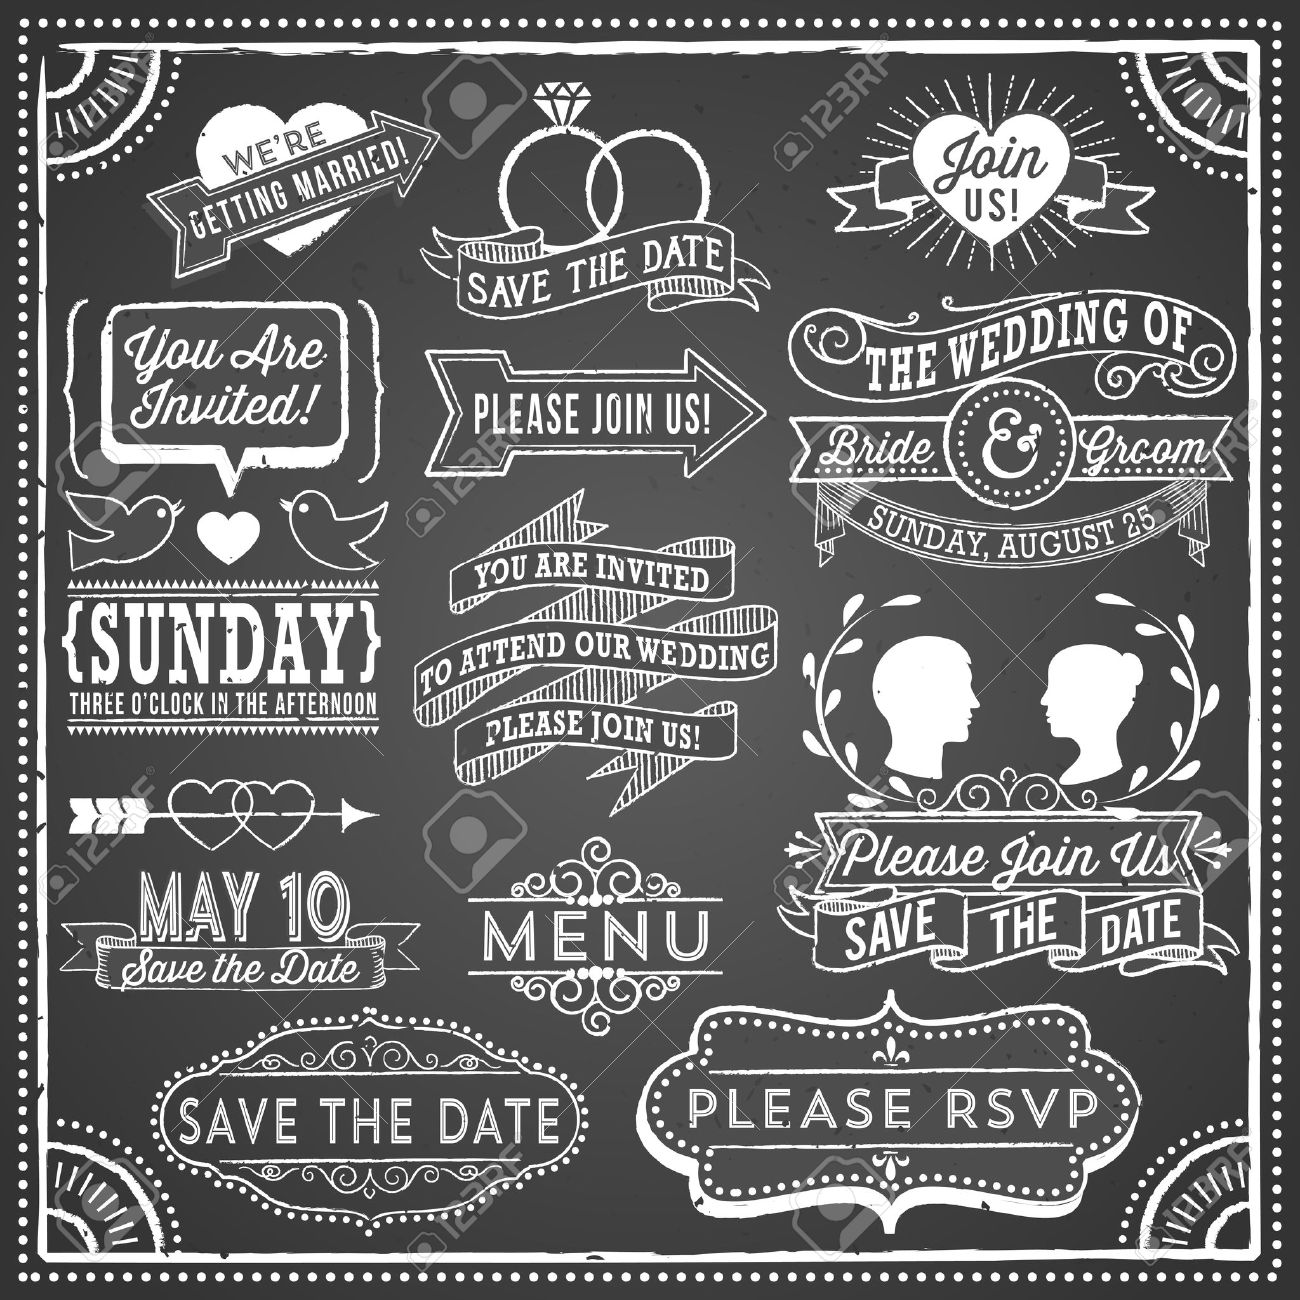 Chalkboard Wedding Invitation Elements Retro And Hand Drawn